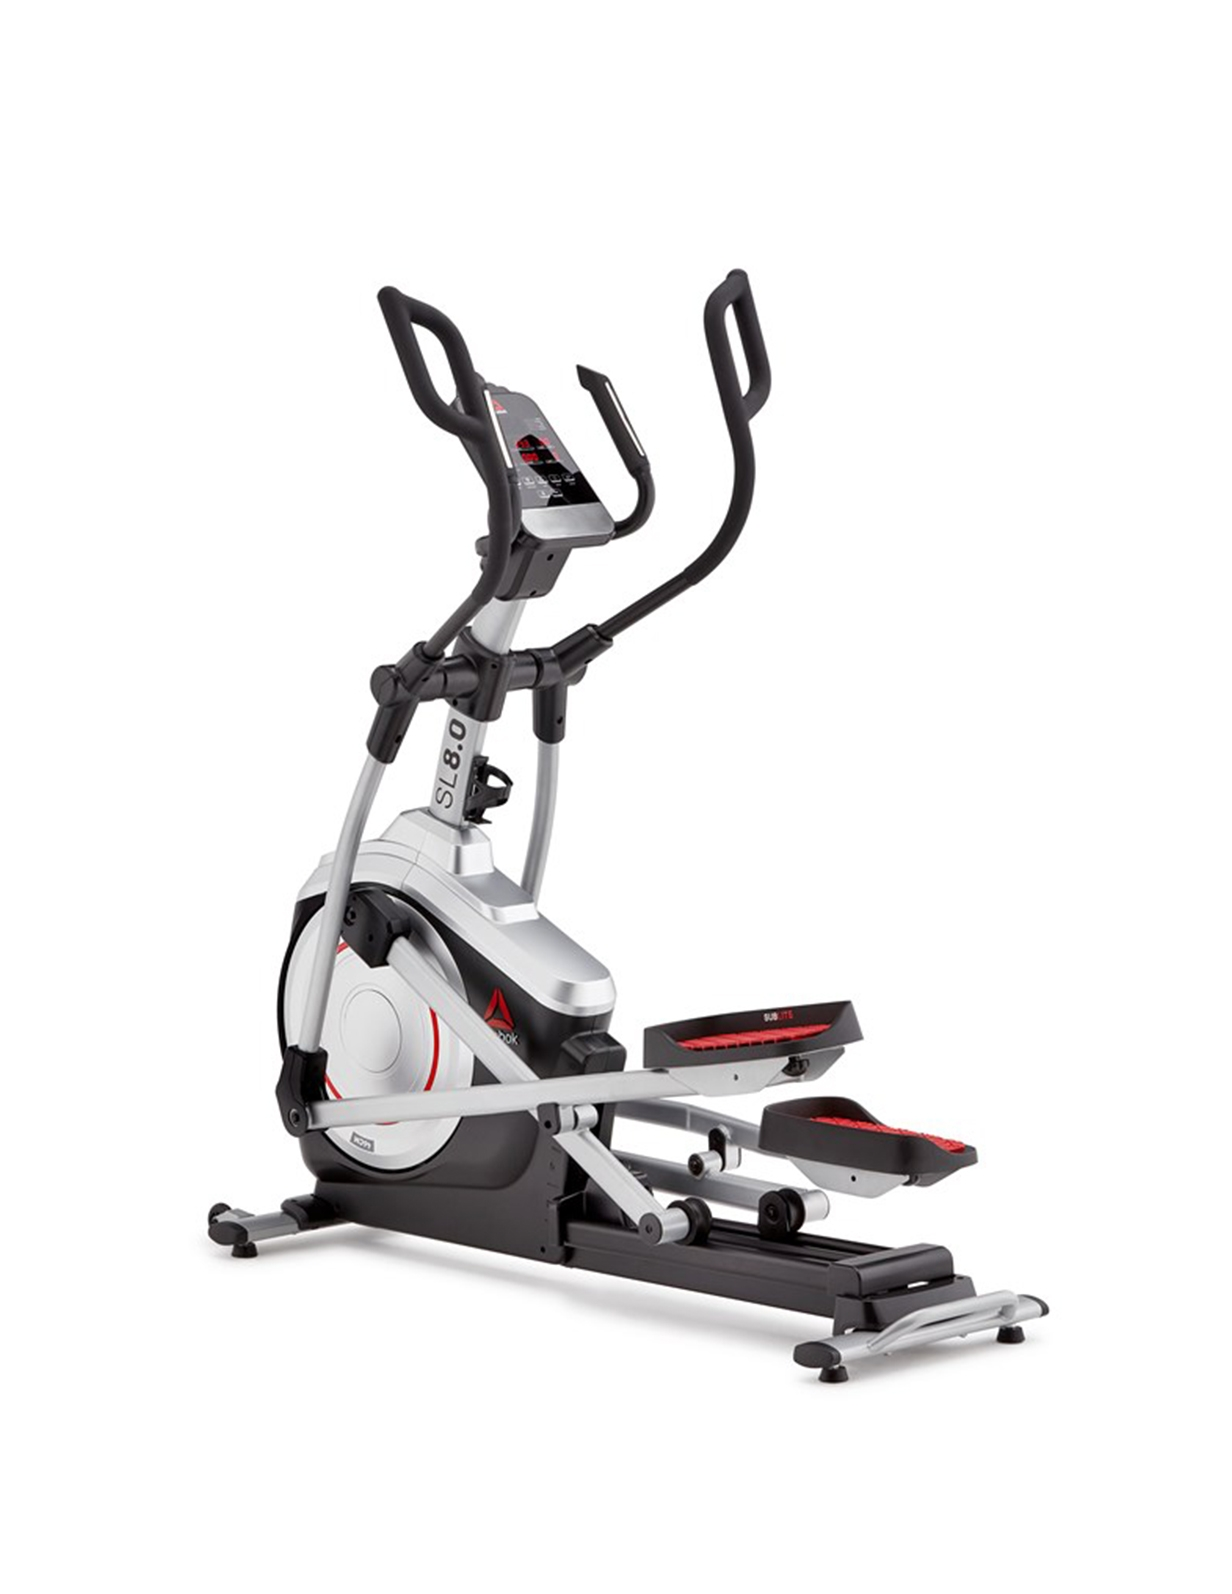 SL8.0 ELLIPTICAL CROSS TRAINER